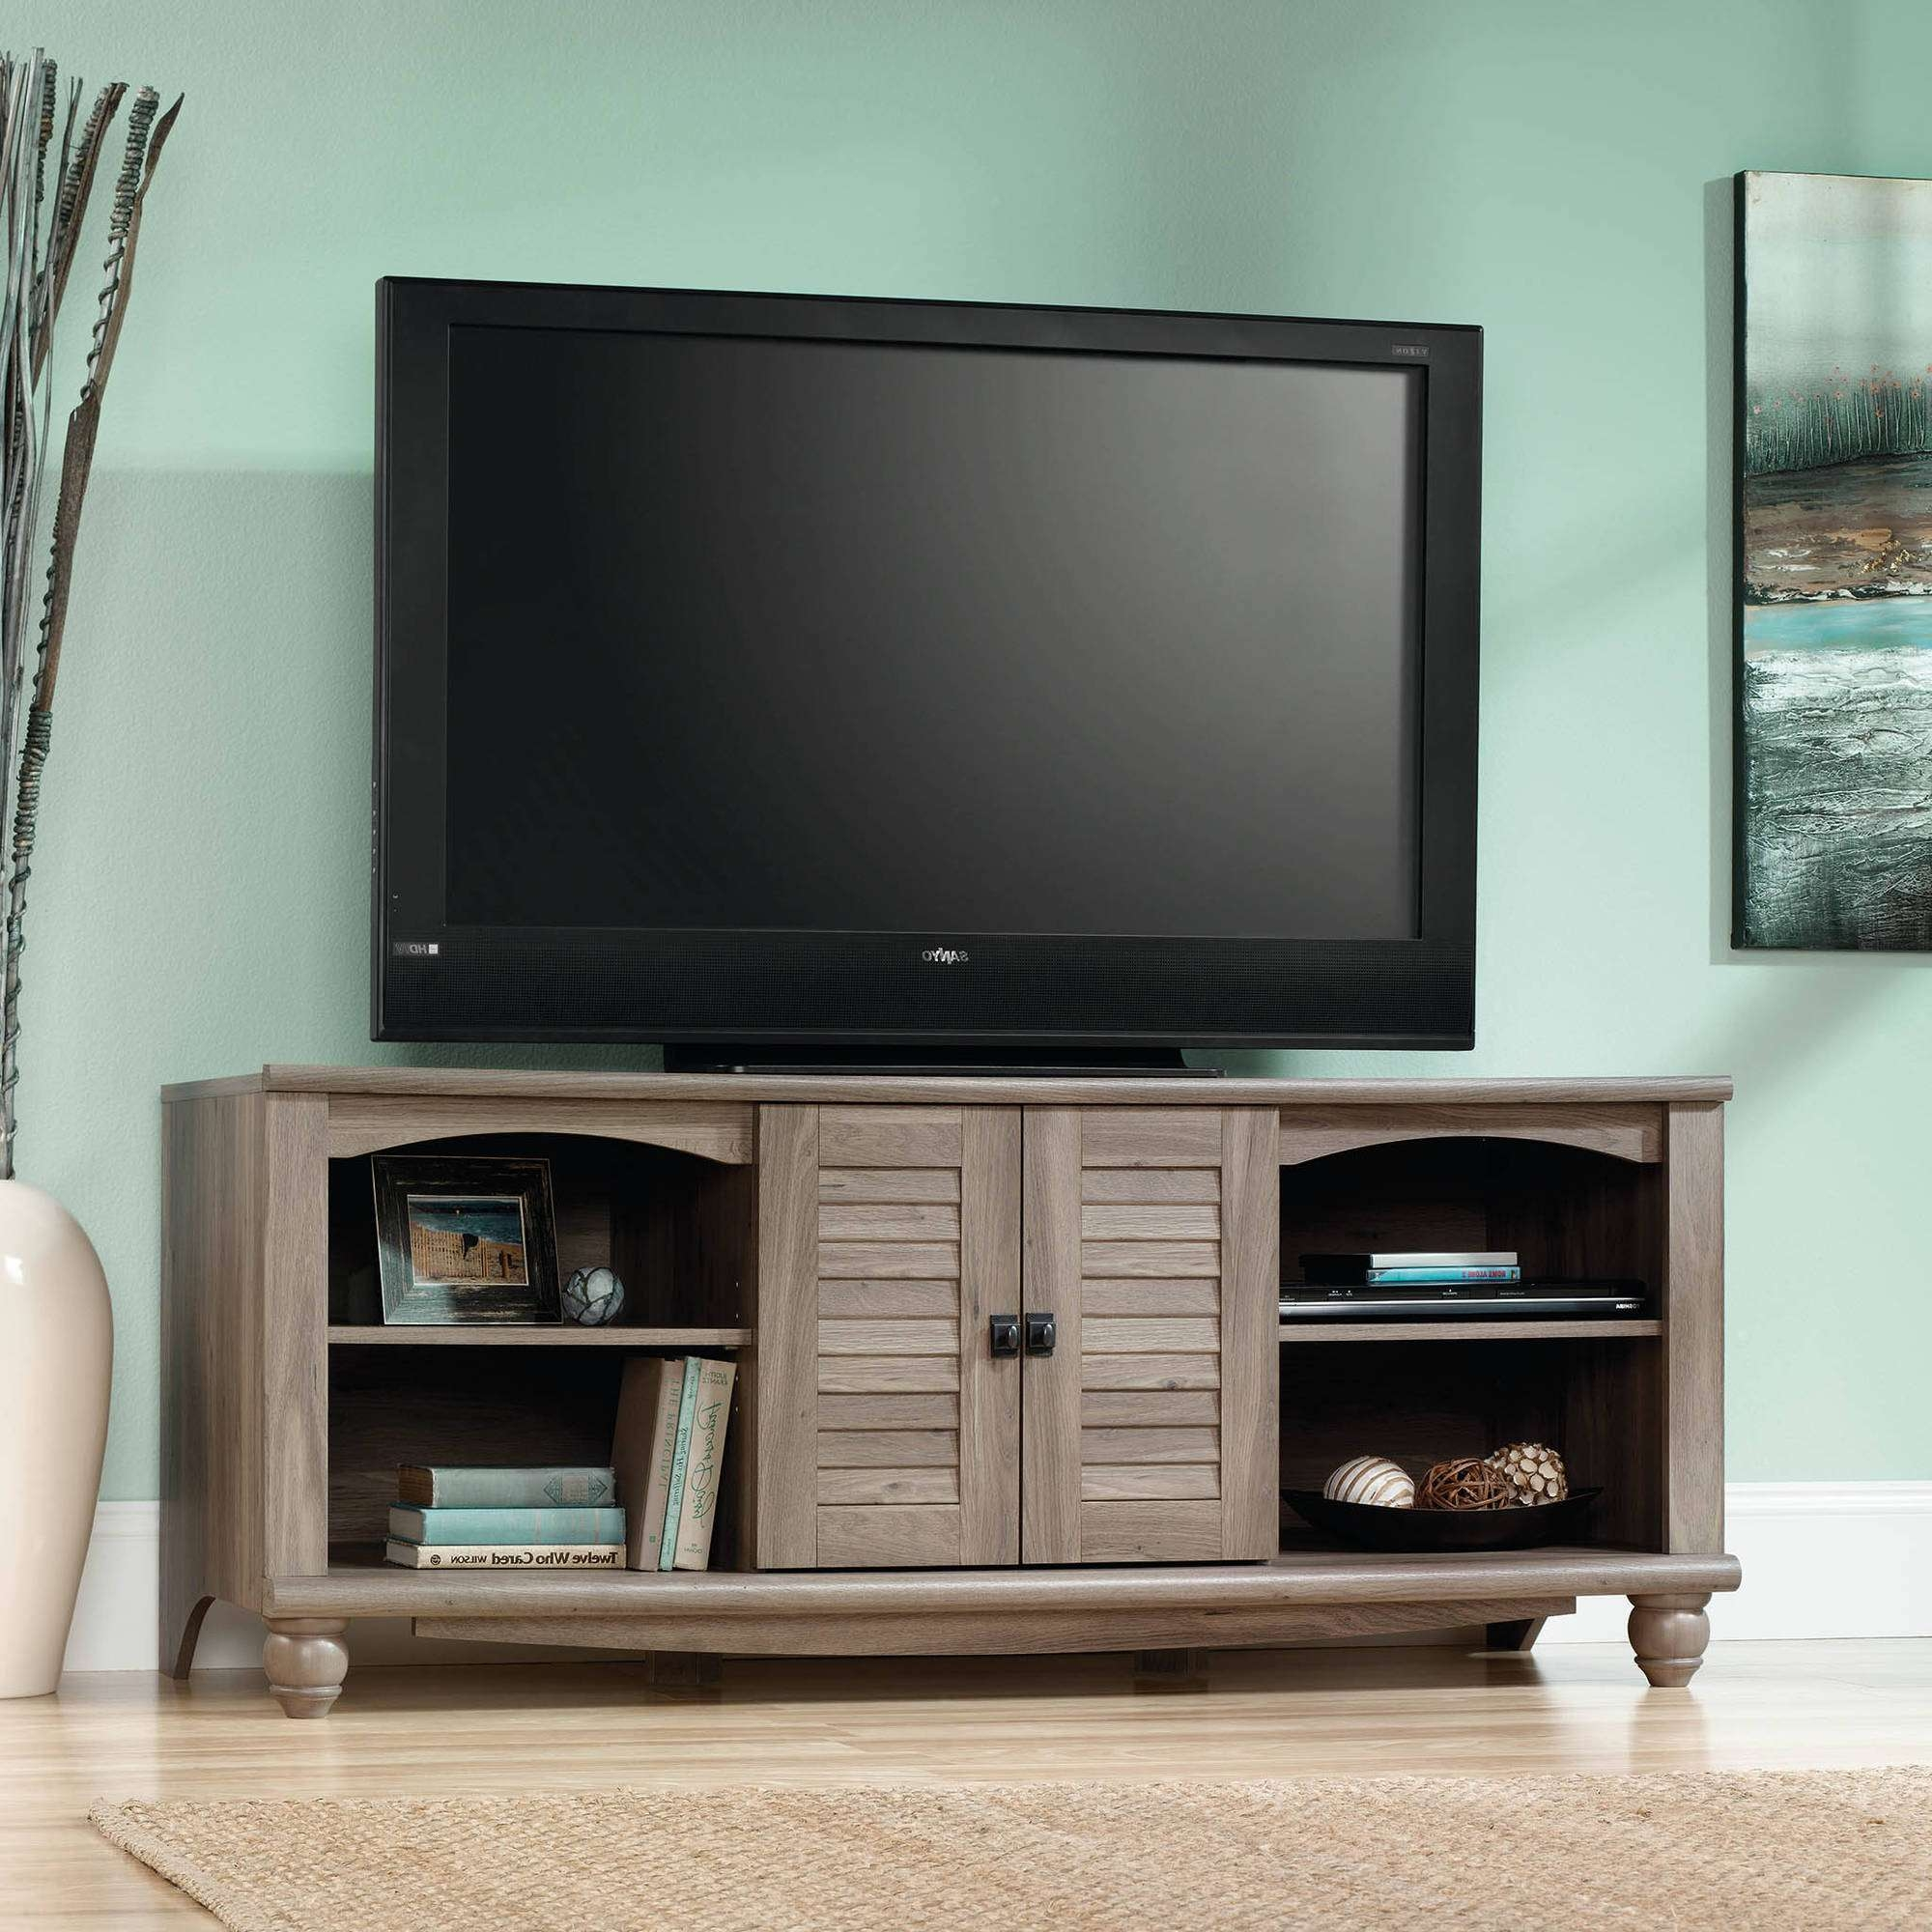 Tv Stand : Stirring Corner Tv Stand Mount Photo Design Bush Inside Black Corner Tv Stands For Tvs Up To  (View 16 of 20)